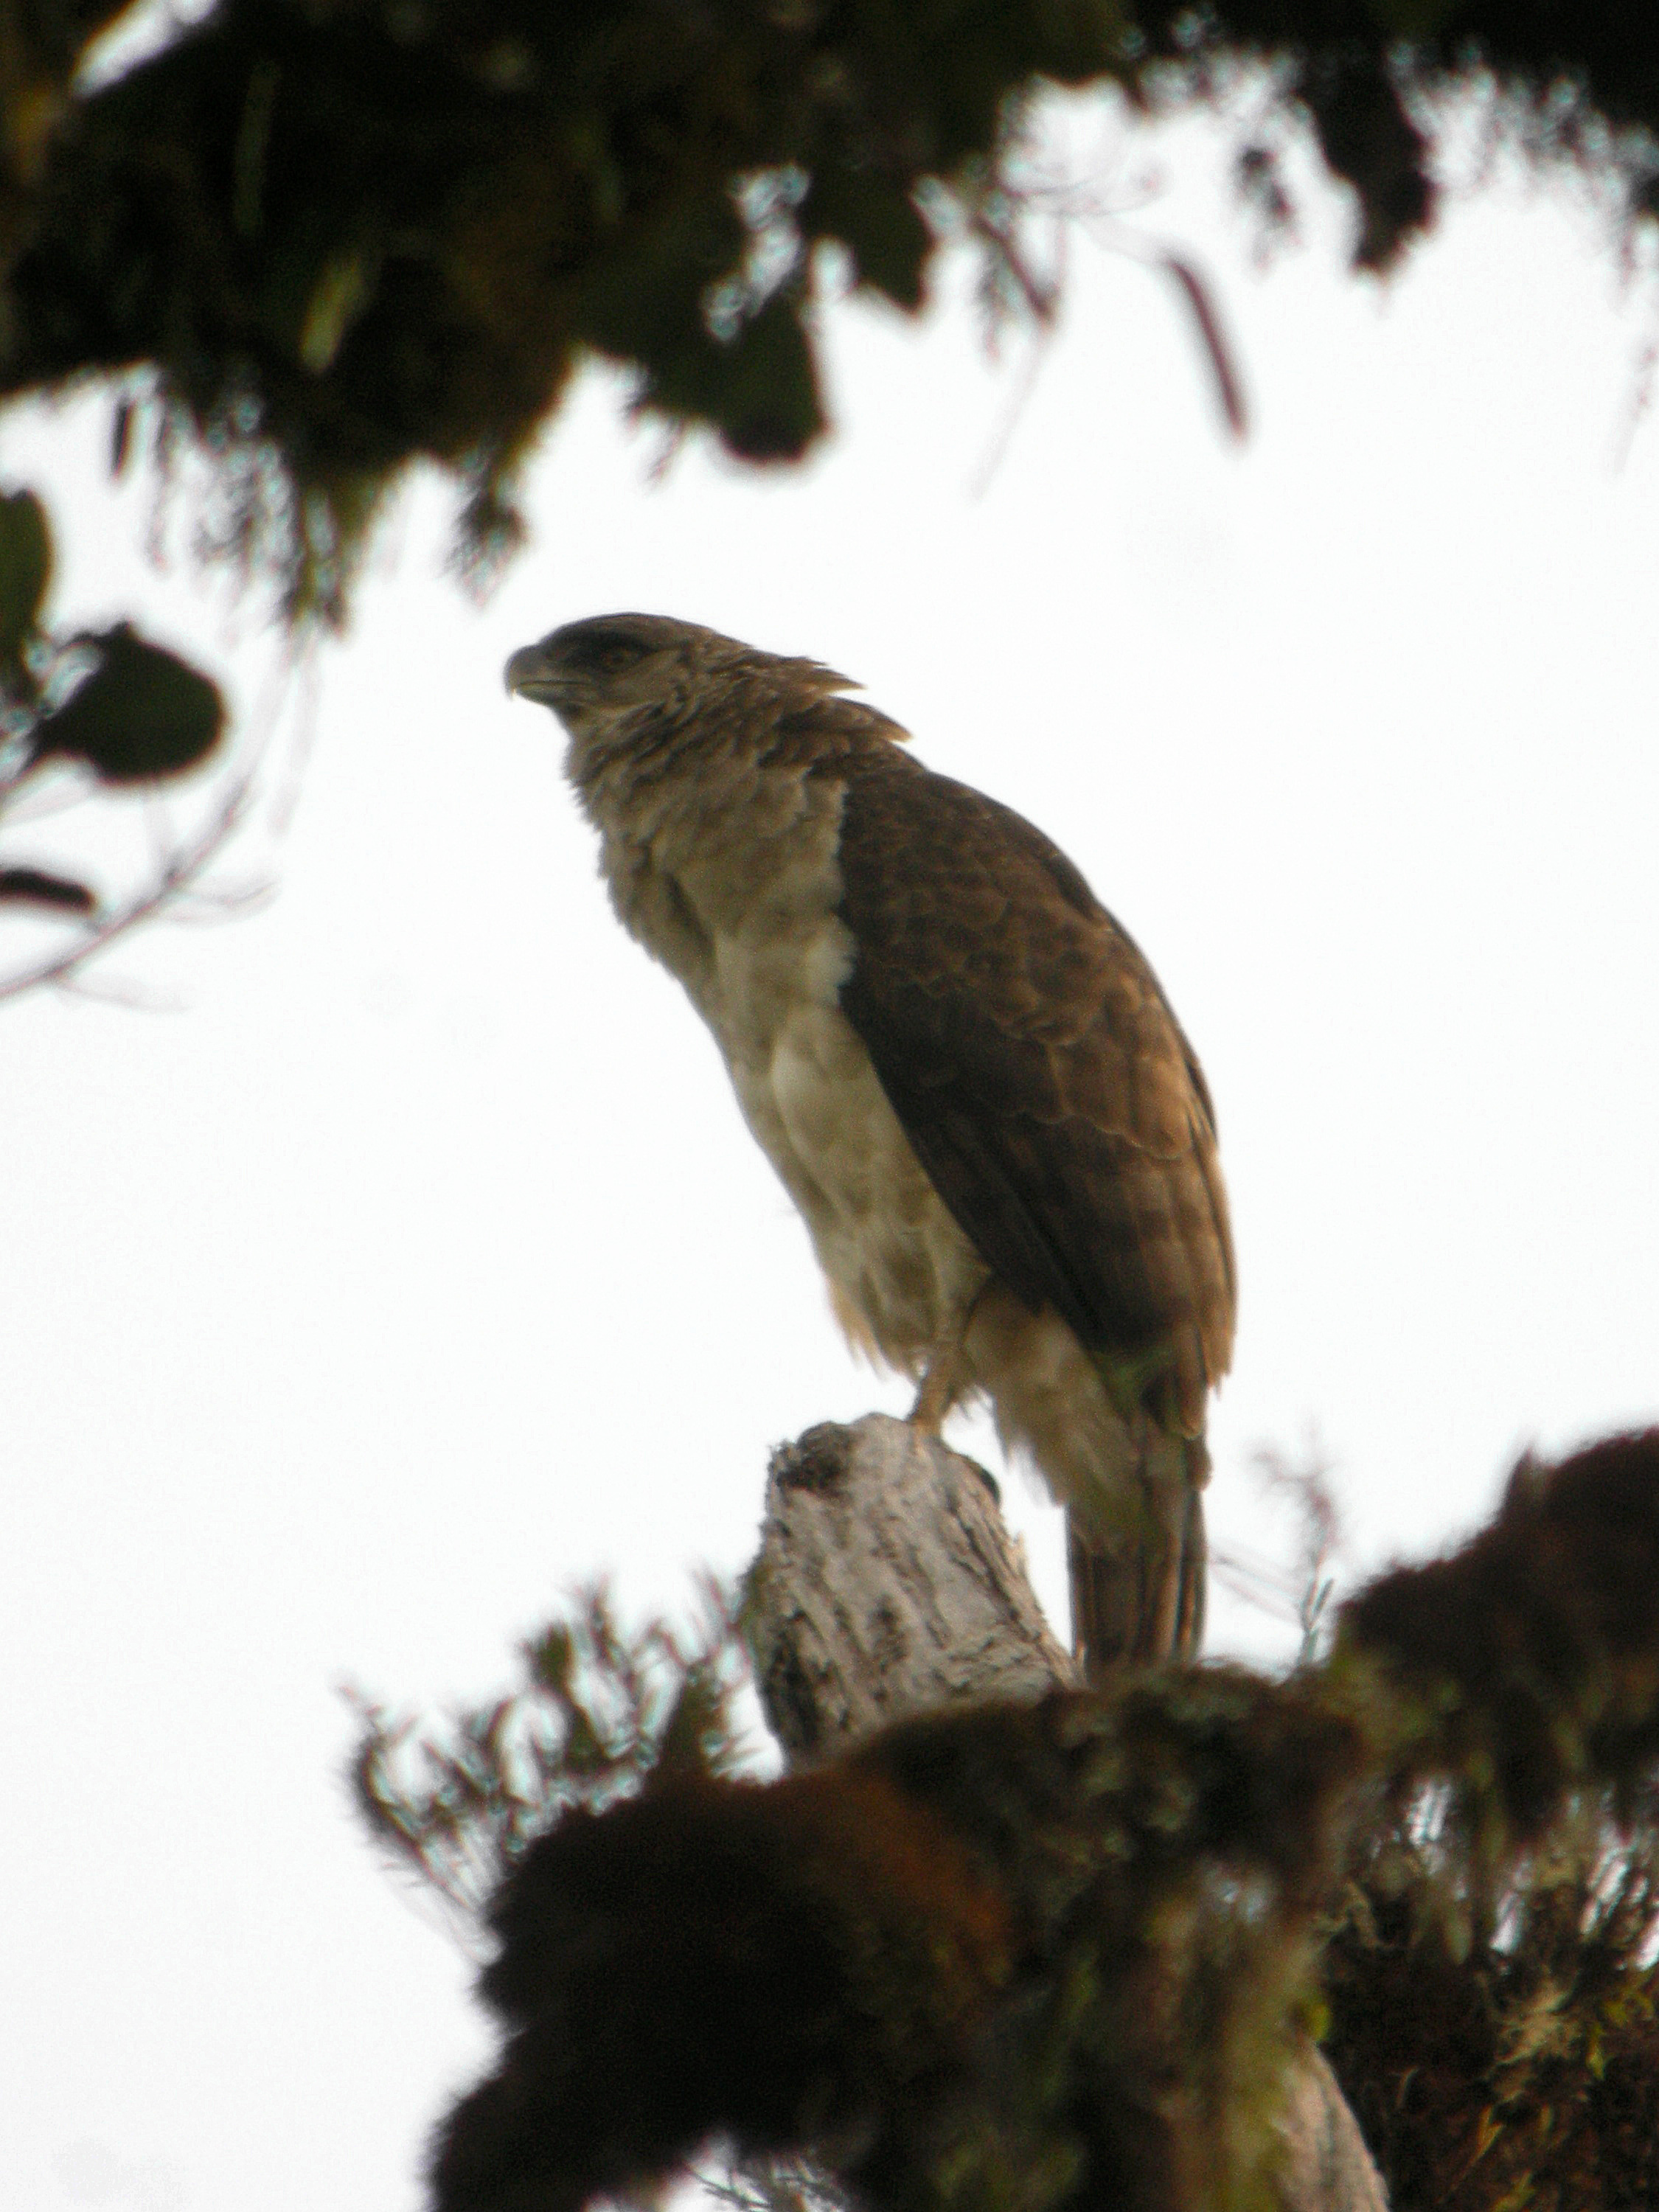 https://upload.wikimedia.org/wikipedia/commons/2/24/New_Guinea_Eagle.jpg